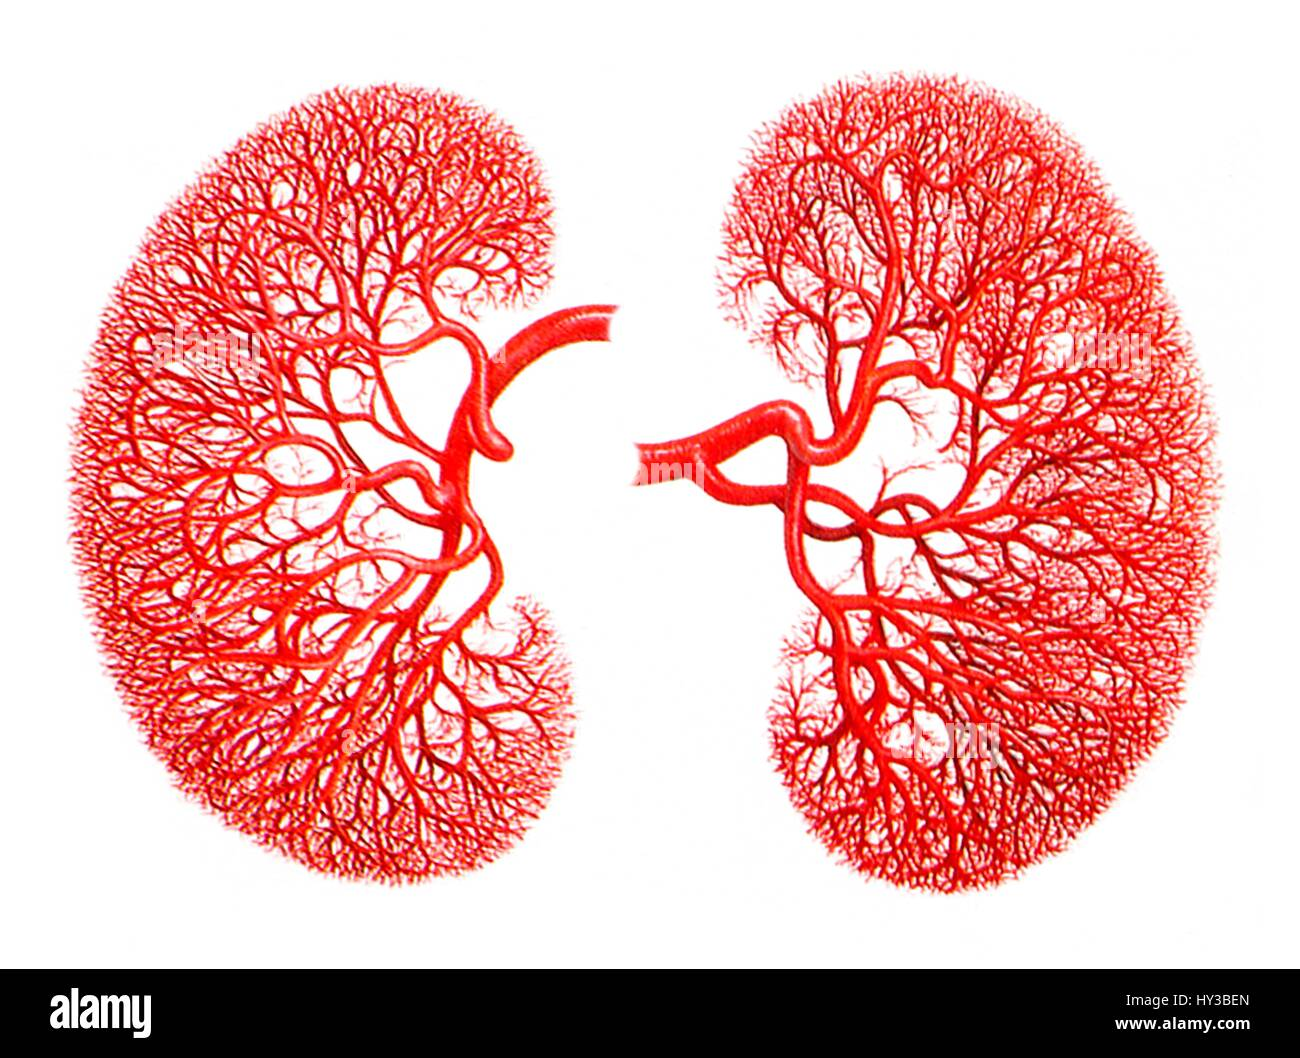 Computer Artwork Of The Blood Supply To Human Kidneys Showing The